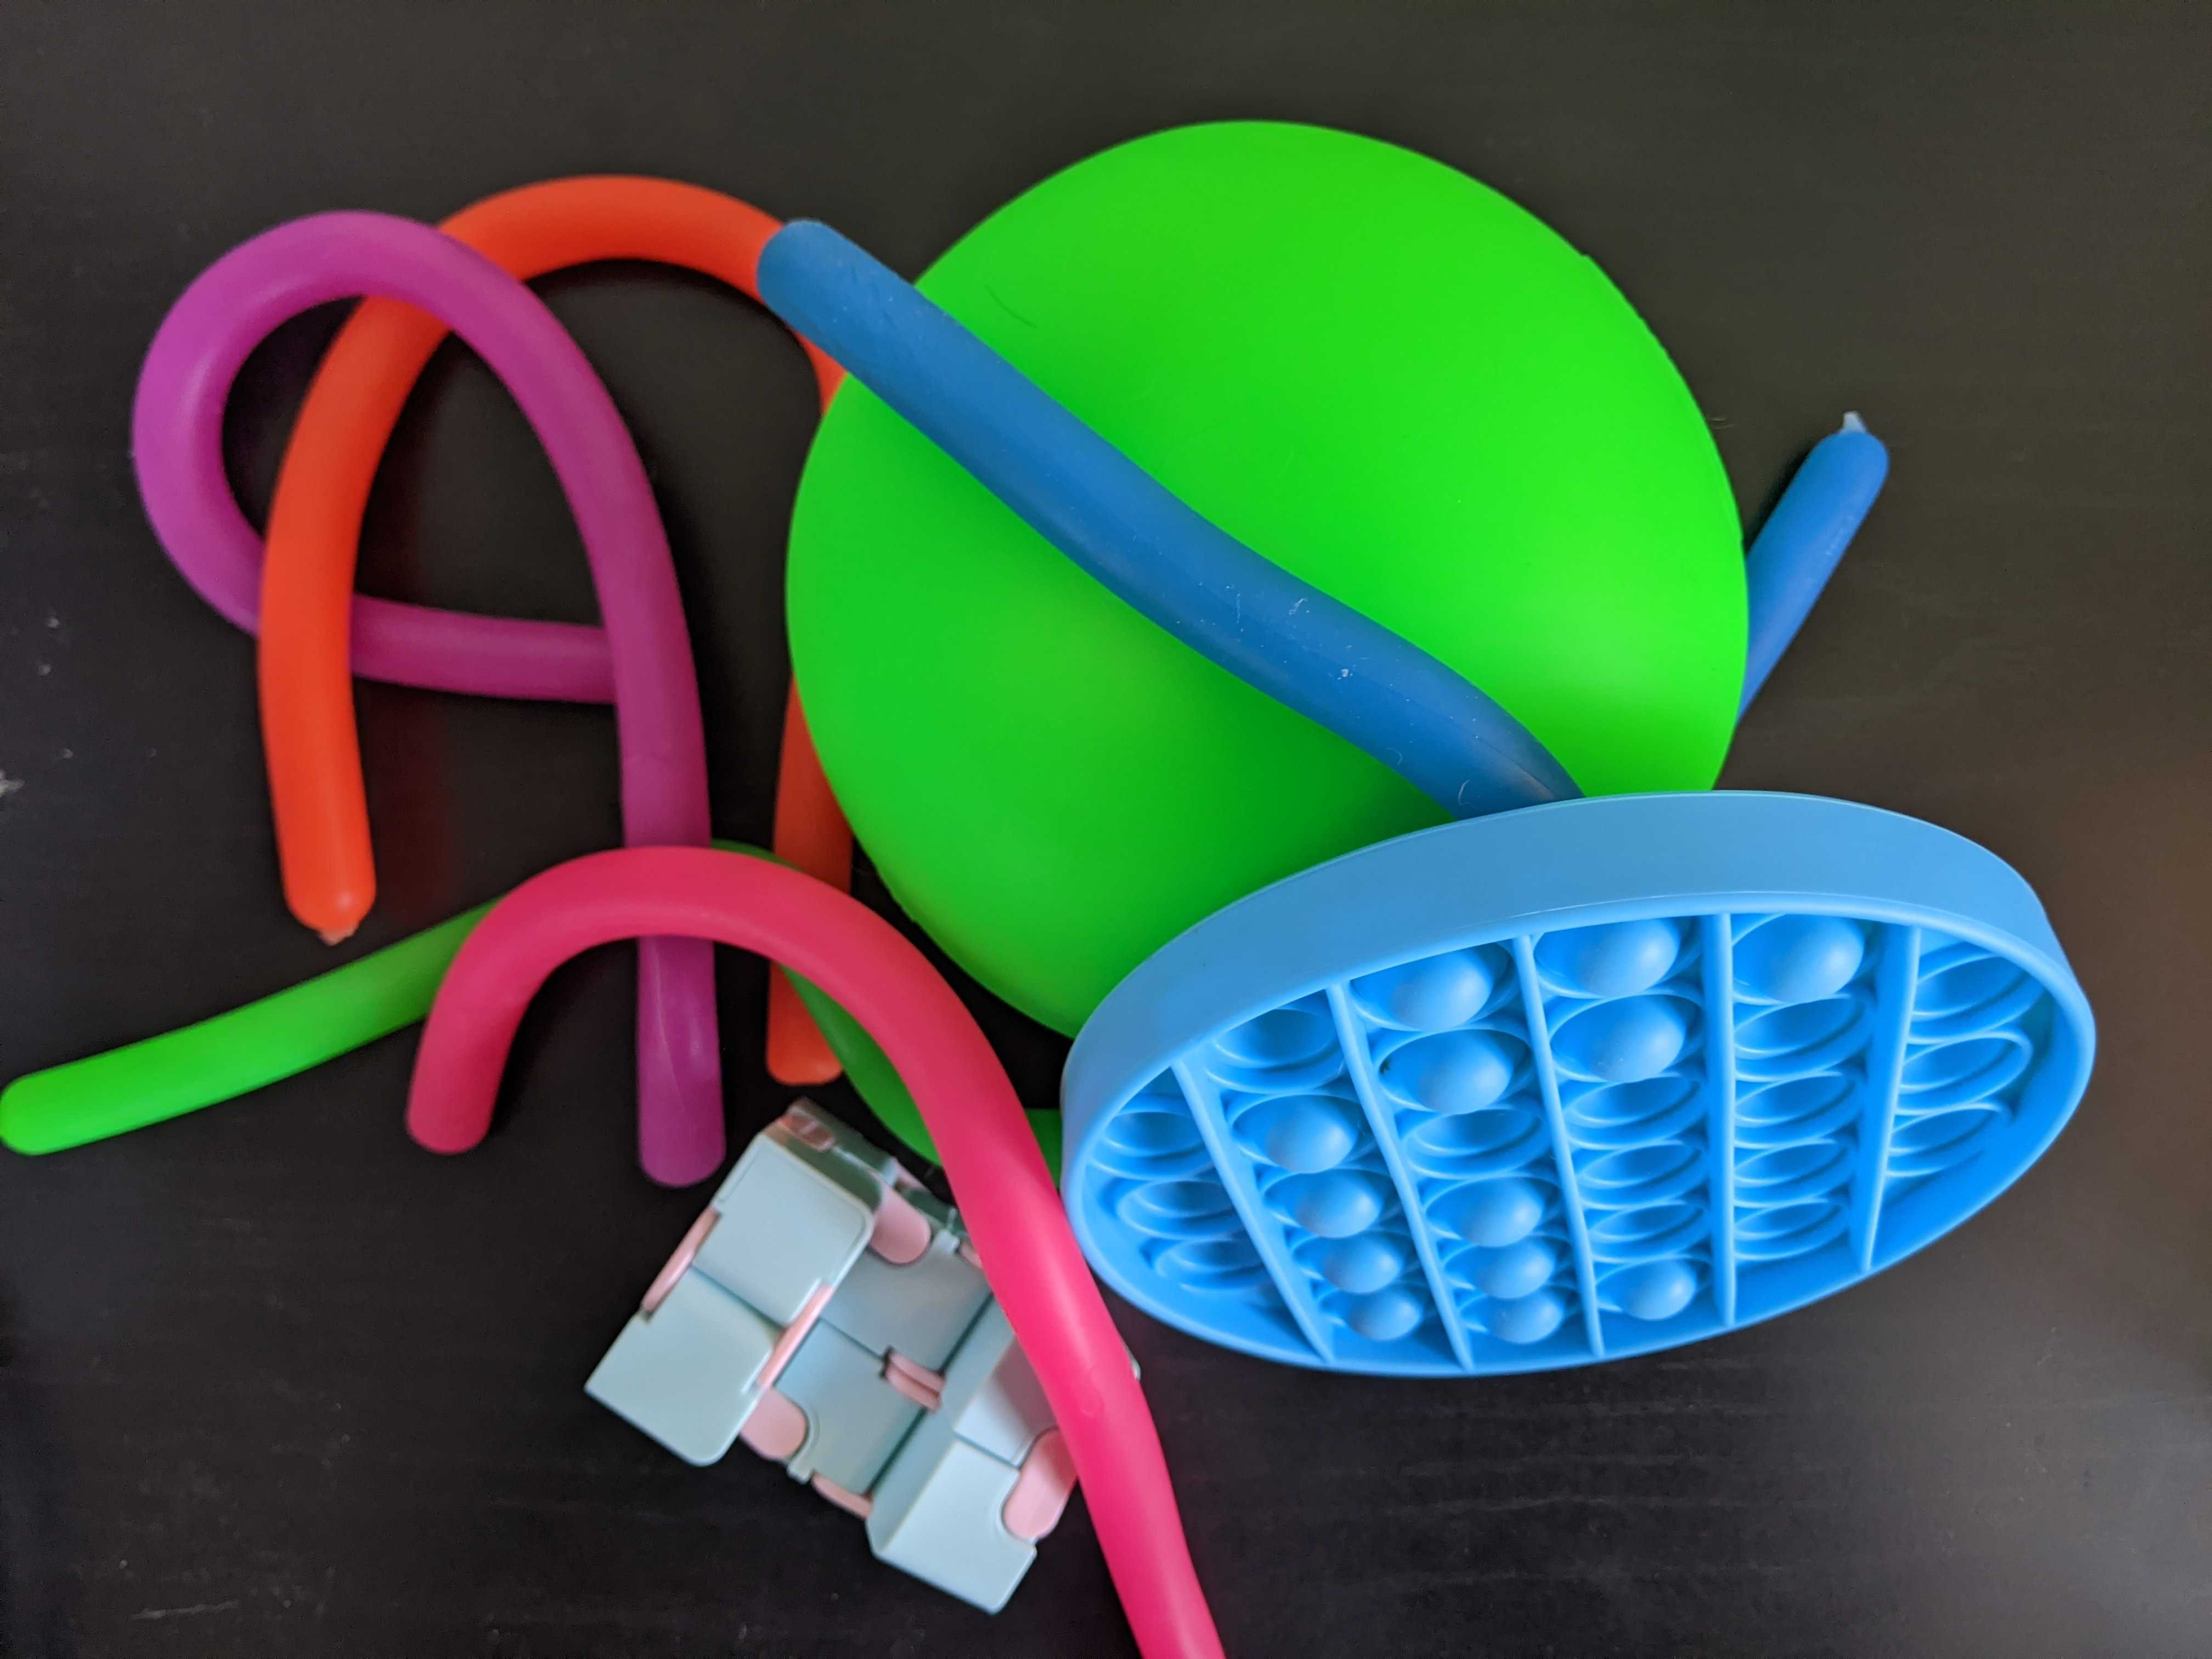 A pile of bright, neon colored fidget toys. Some are long rubber noodles, there's a giant neon green stress ball, a push pop bubble, and an infinity cube.